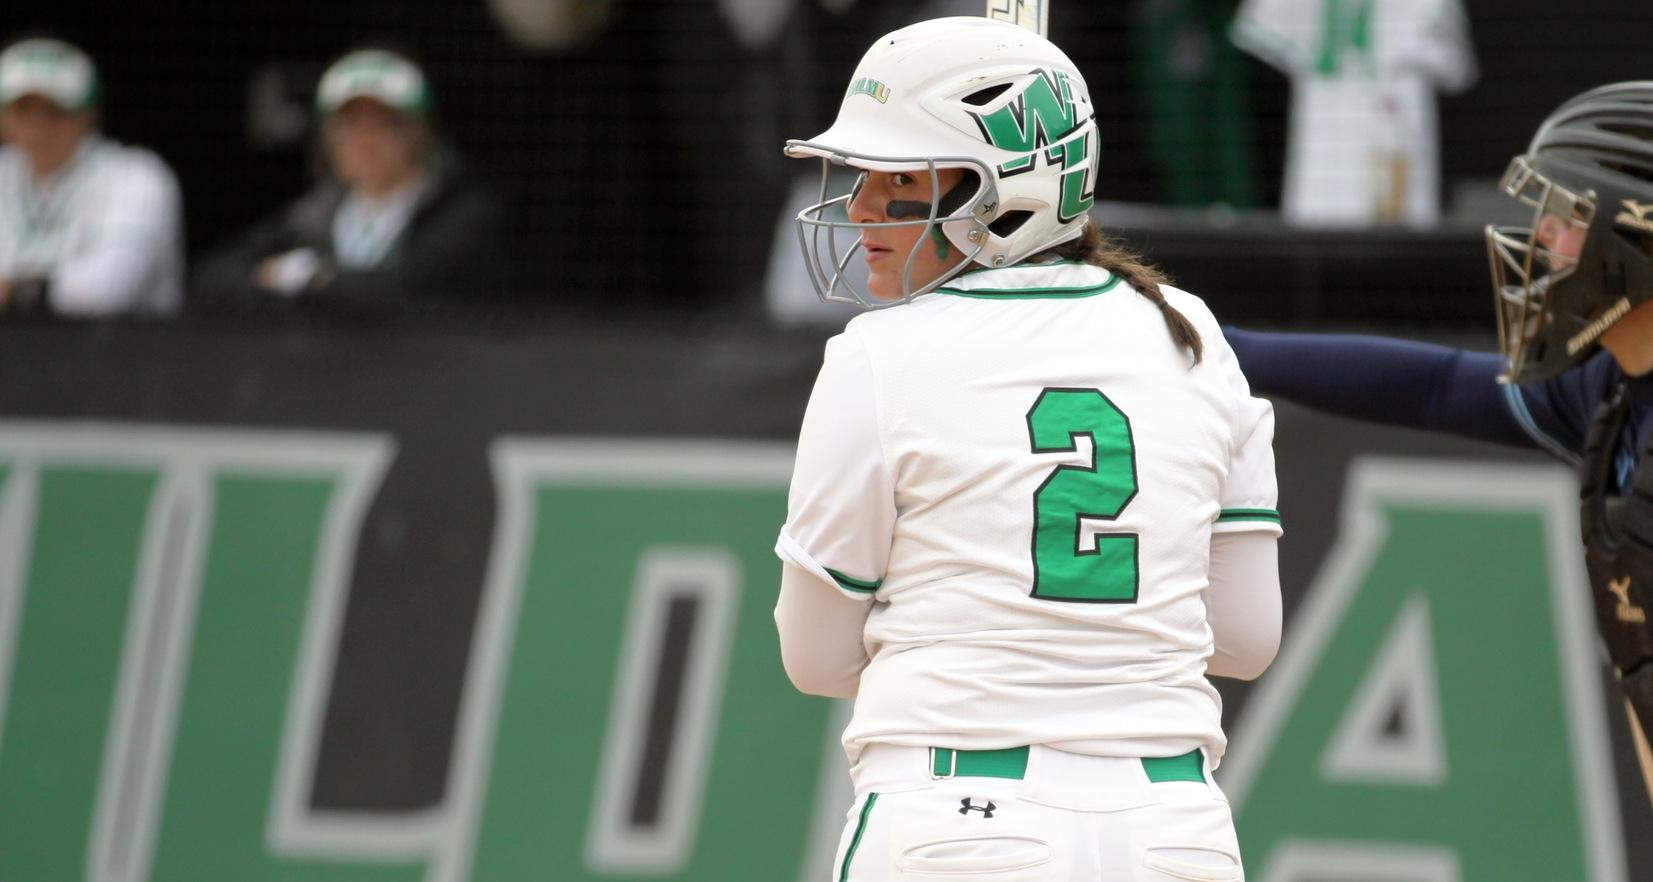 Copyright 2019: Wilmington University. All rights reserved. File photo of Lauren Lopez who broke the single season record for RBI with eight RBI against Dominican, now with 54 on the year. Photo by Katlynne Tubo. April 2, 2019 vs. Jefferson (Game 1).